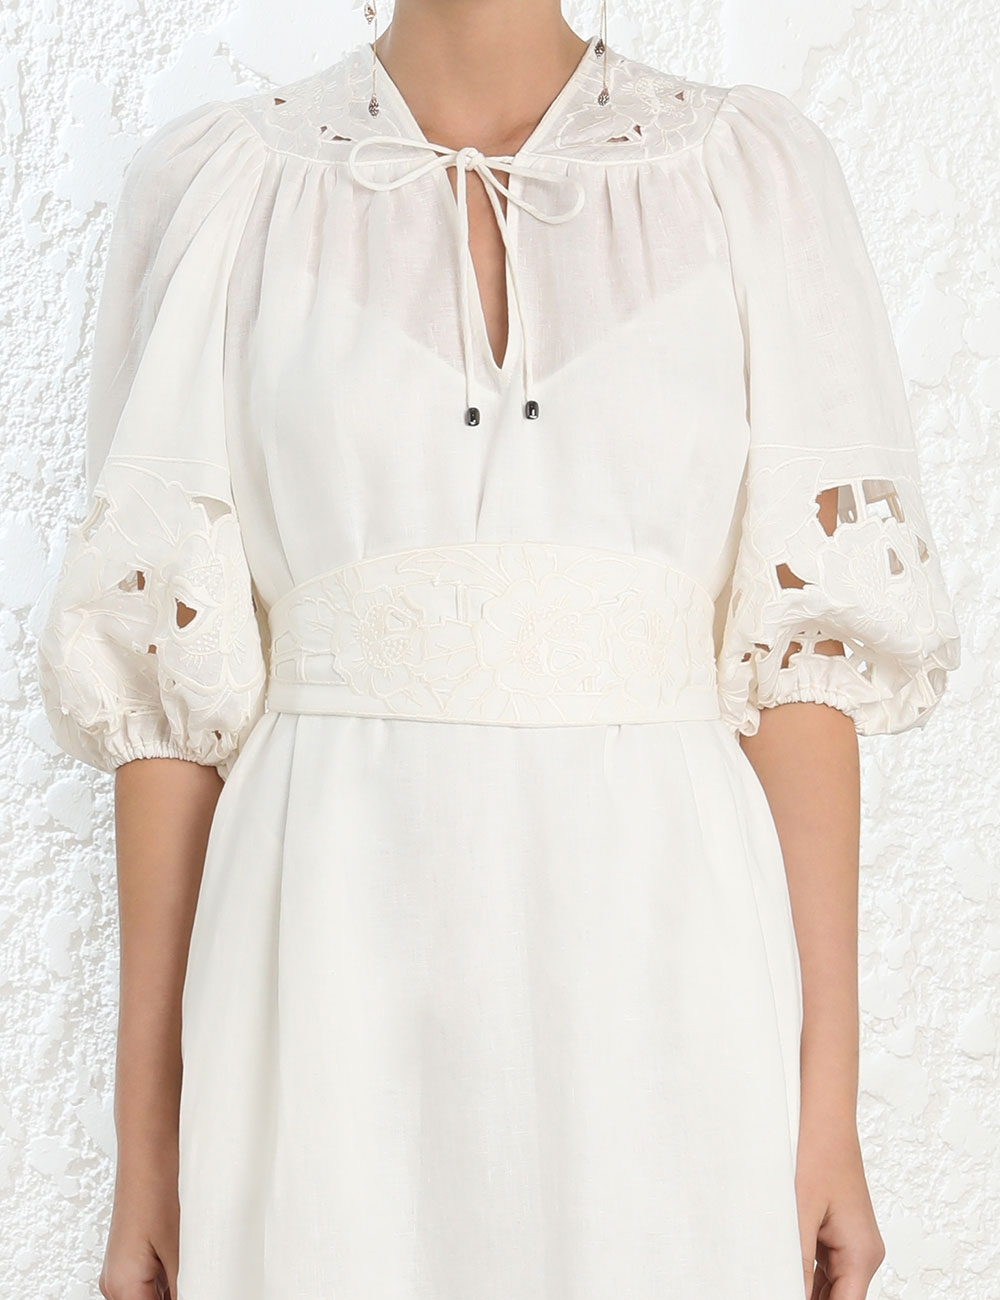 Juno Embroidered Yoke Dress